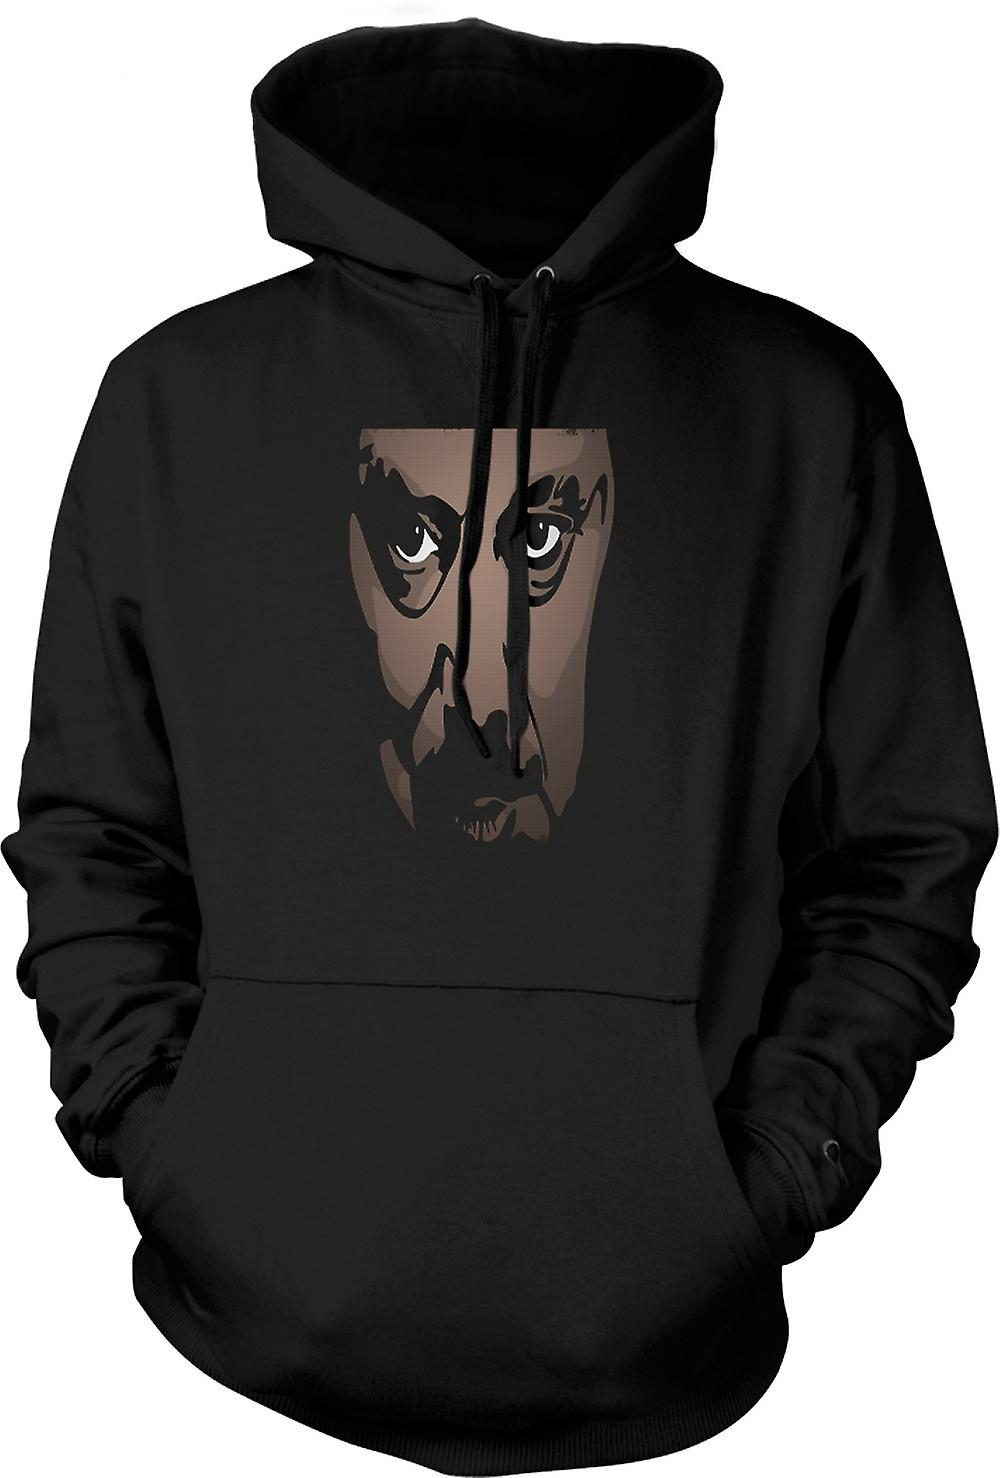 Mens Hoodie - Big Brother - Boss